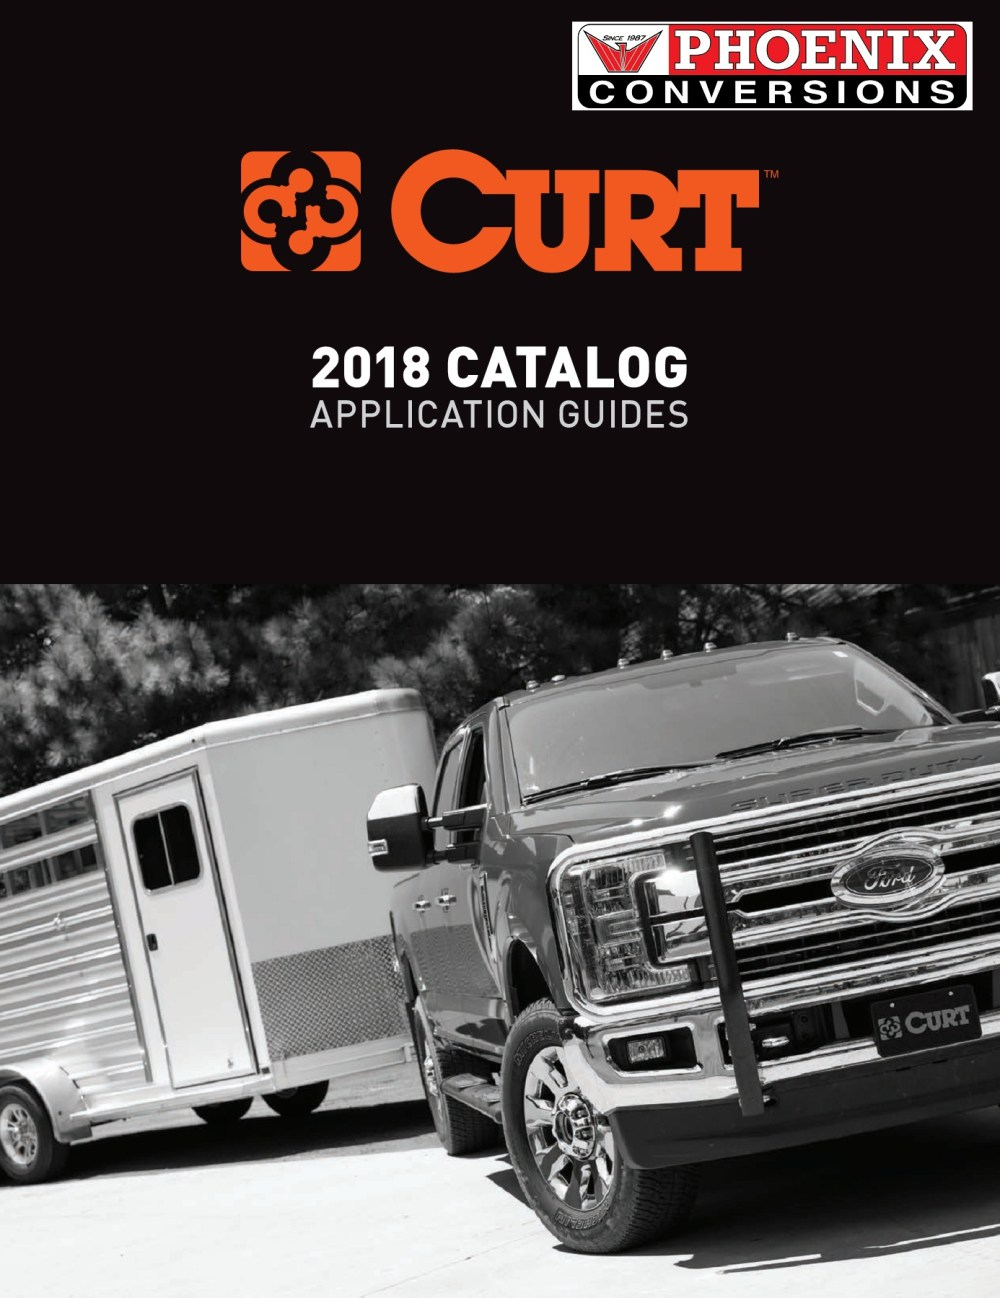 medium resolution of curt 2018 catalog with app guide